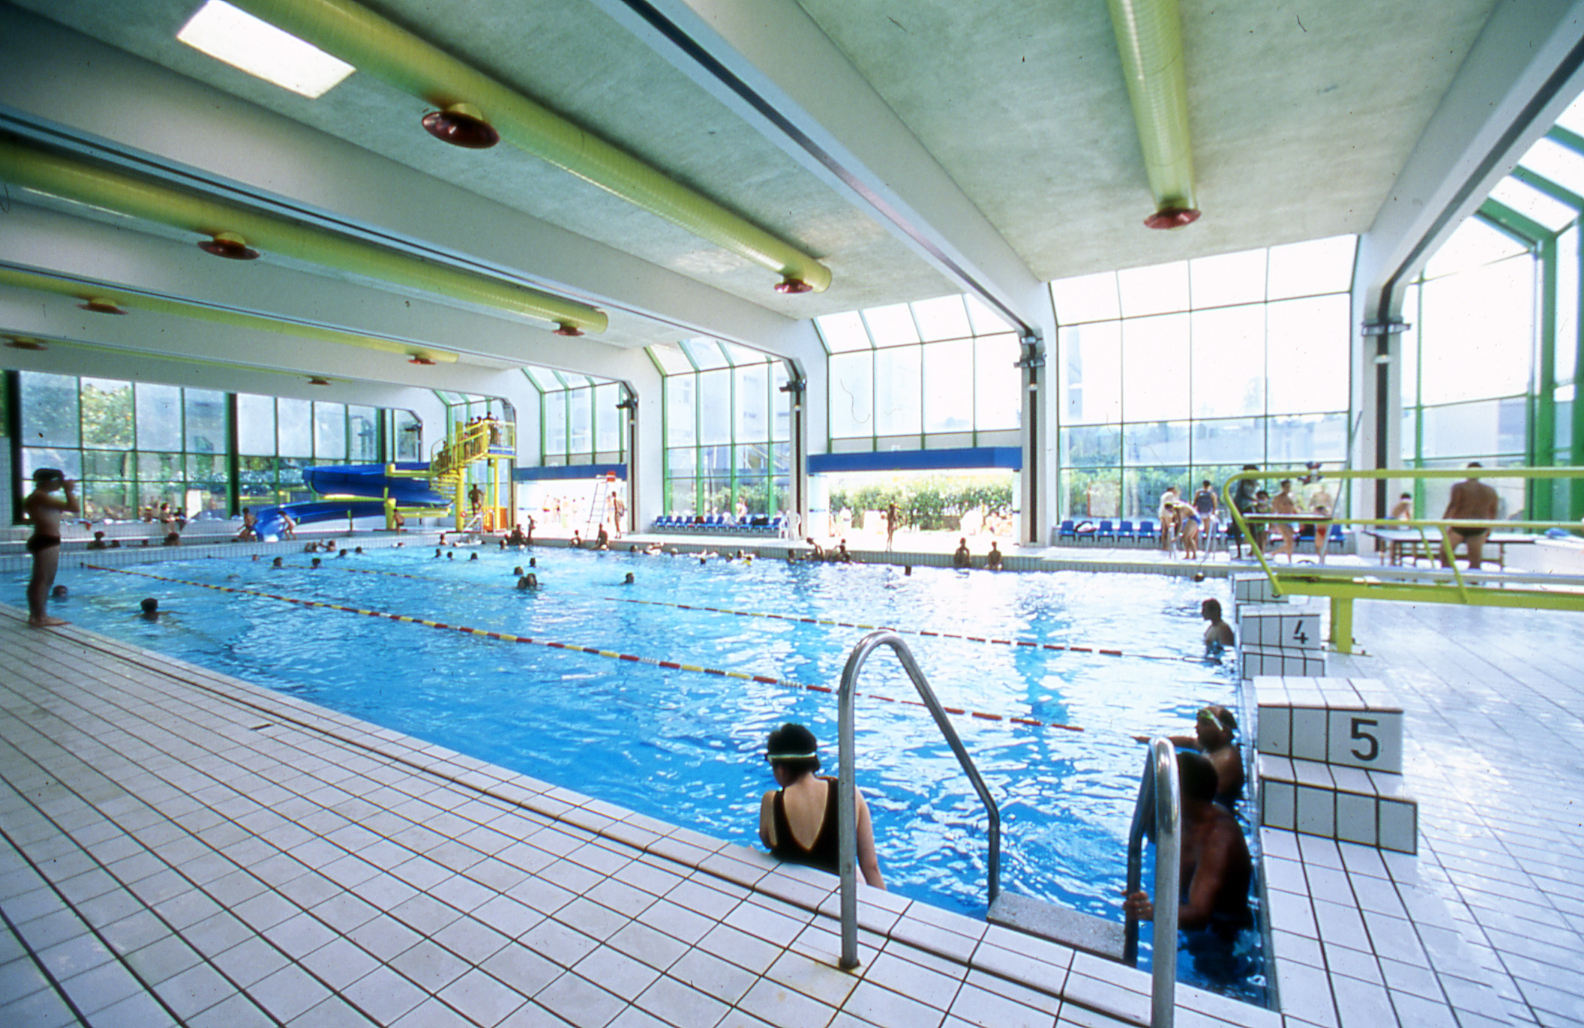 Piscine champerret sport 17e arrondissement paris for Porte de piscine